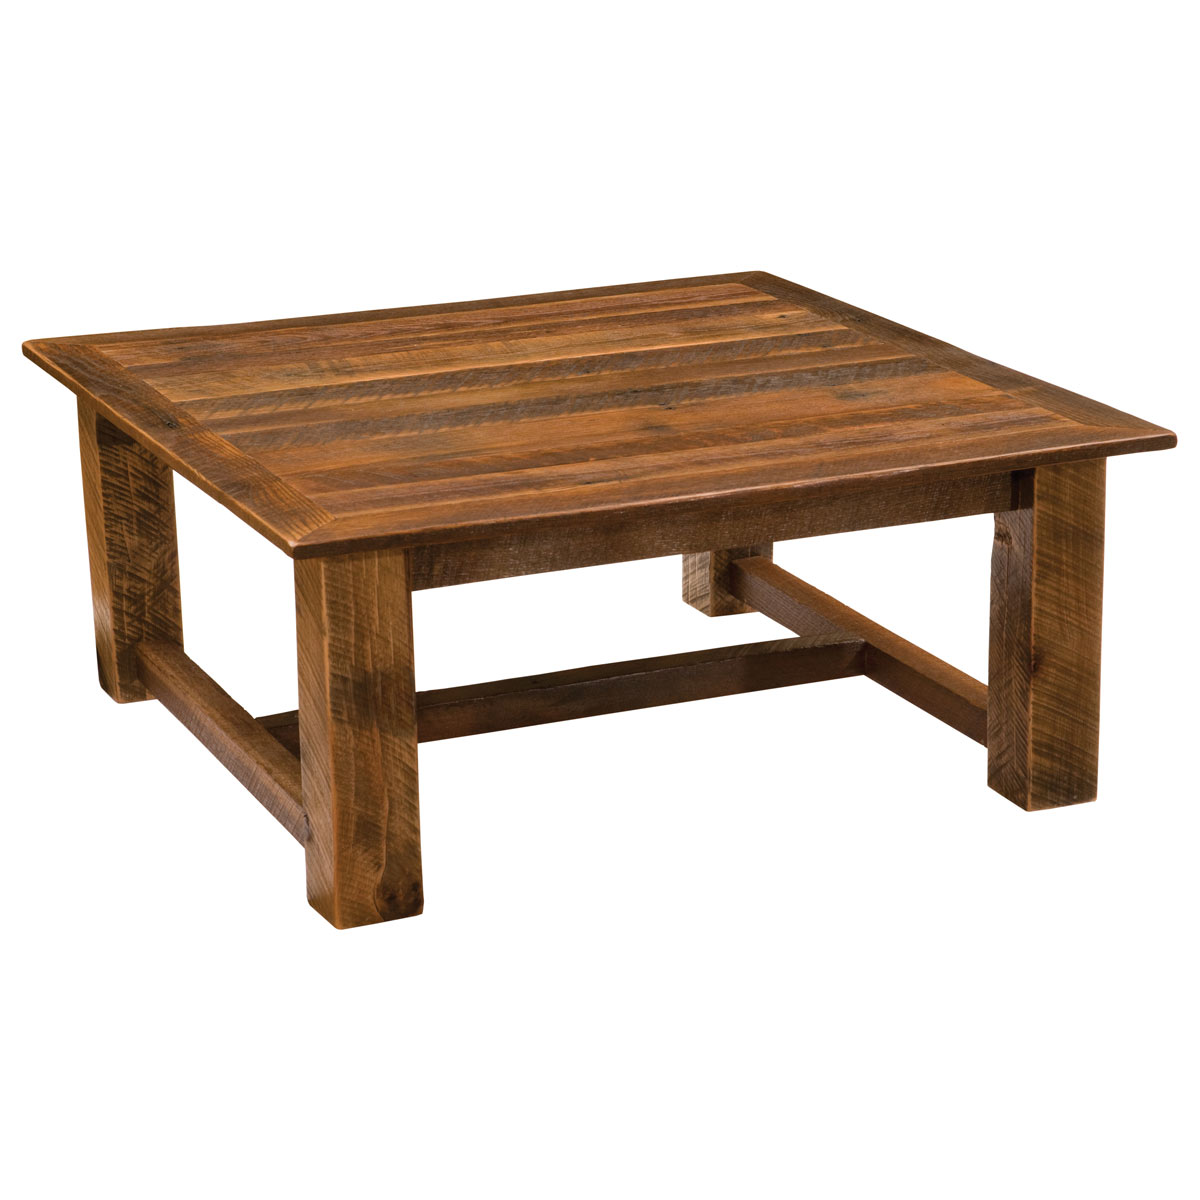 Barnwood Square Open Coffee Table 42 X